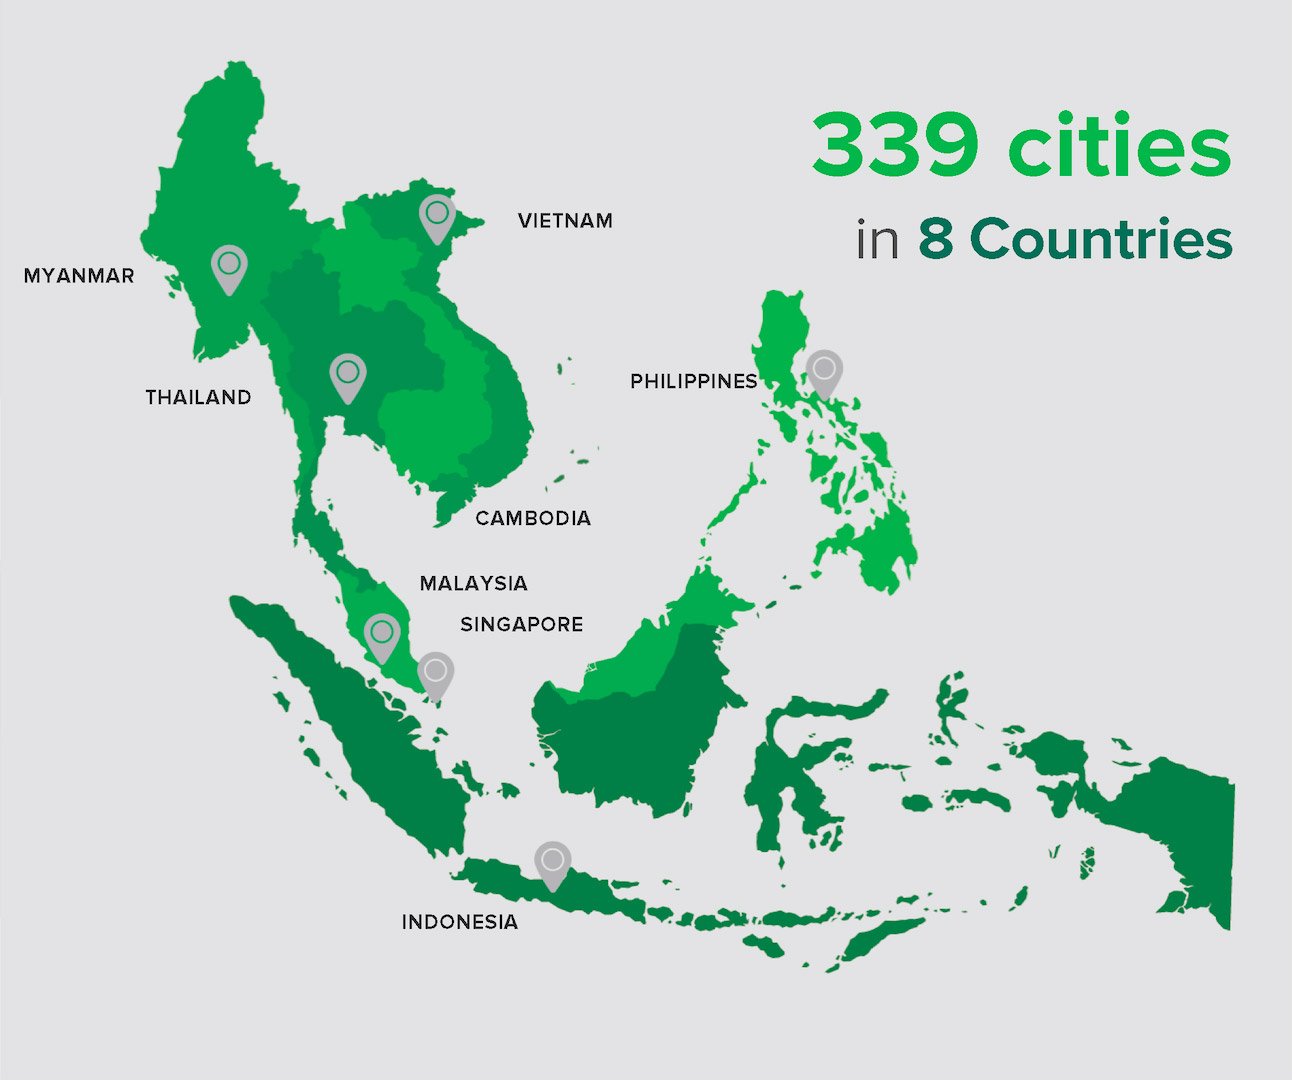 Grab operations span across 8 Southeast Asian countries (Source: Grab)